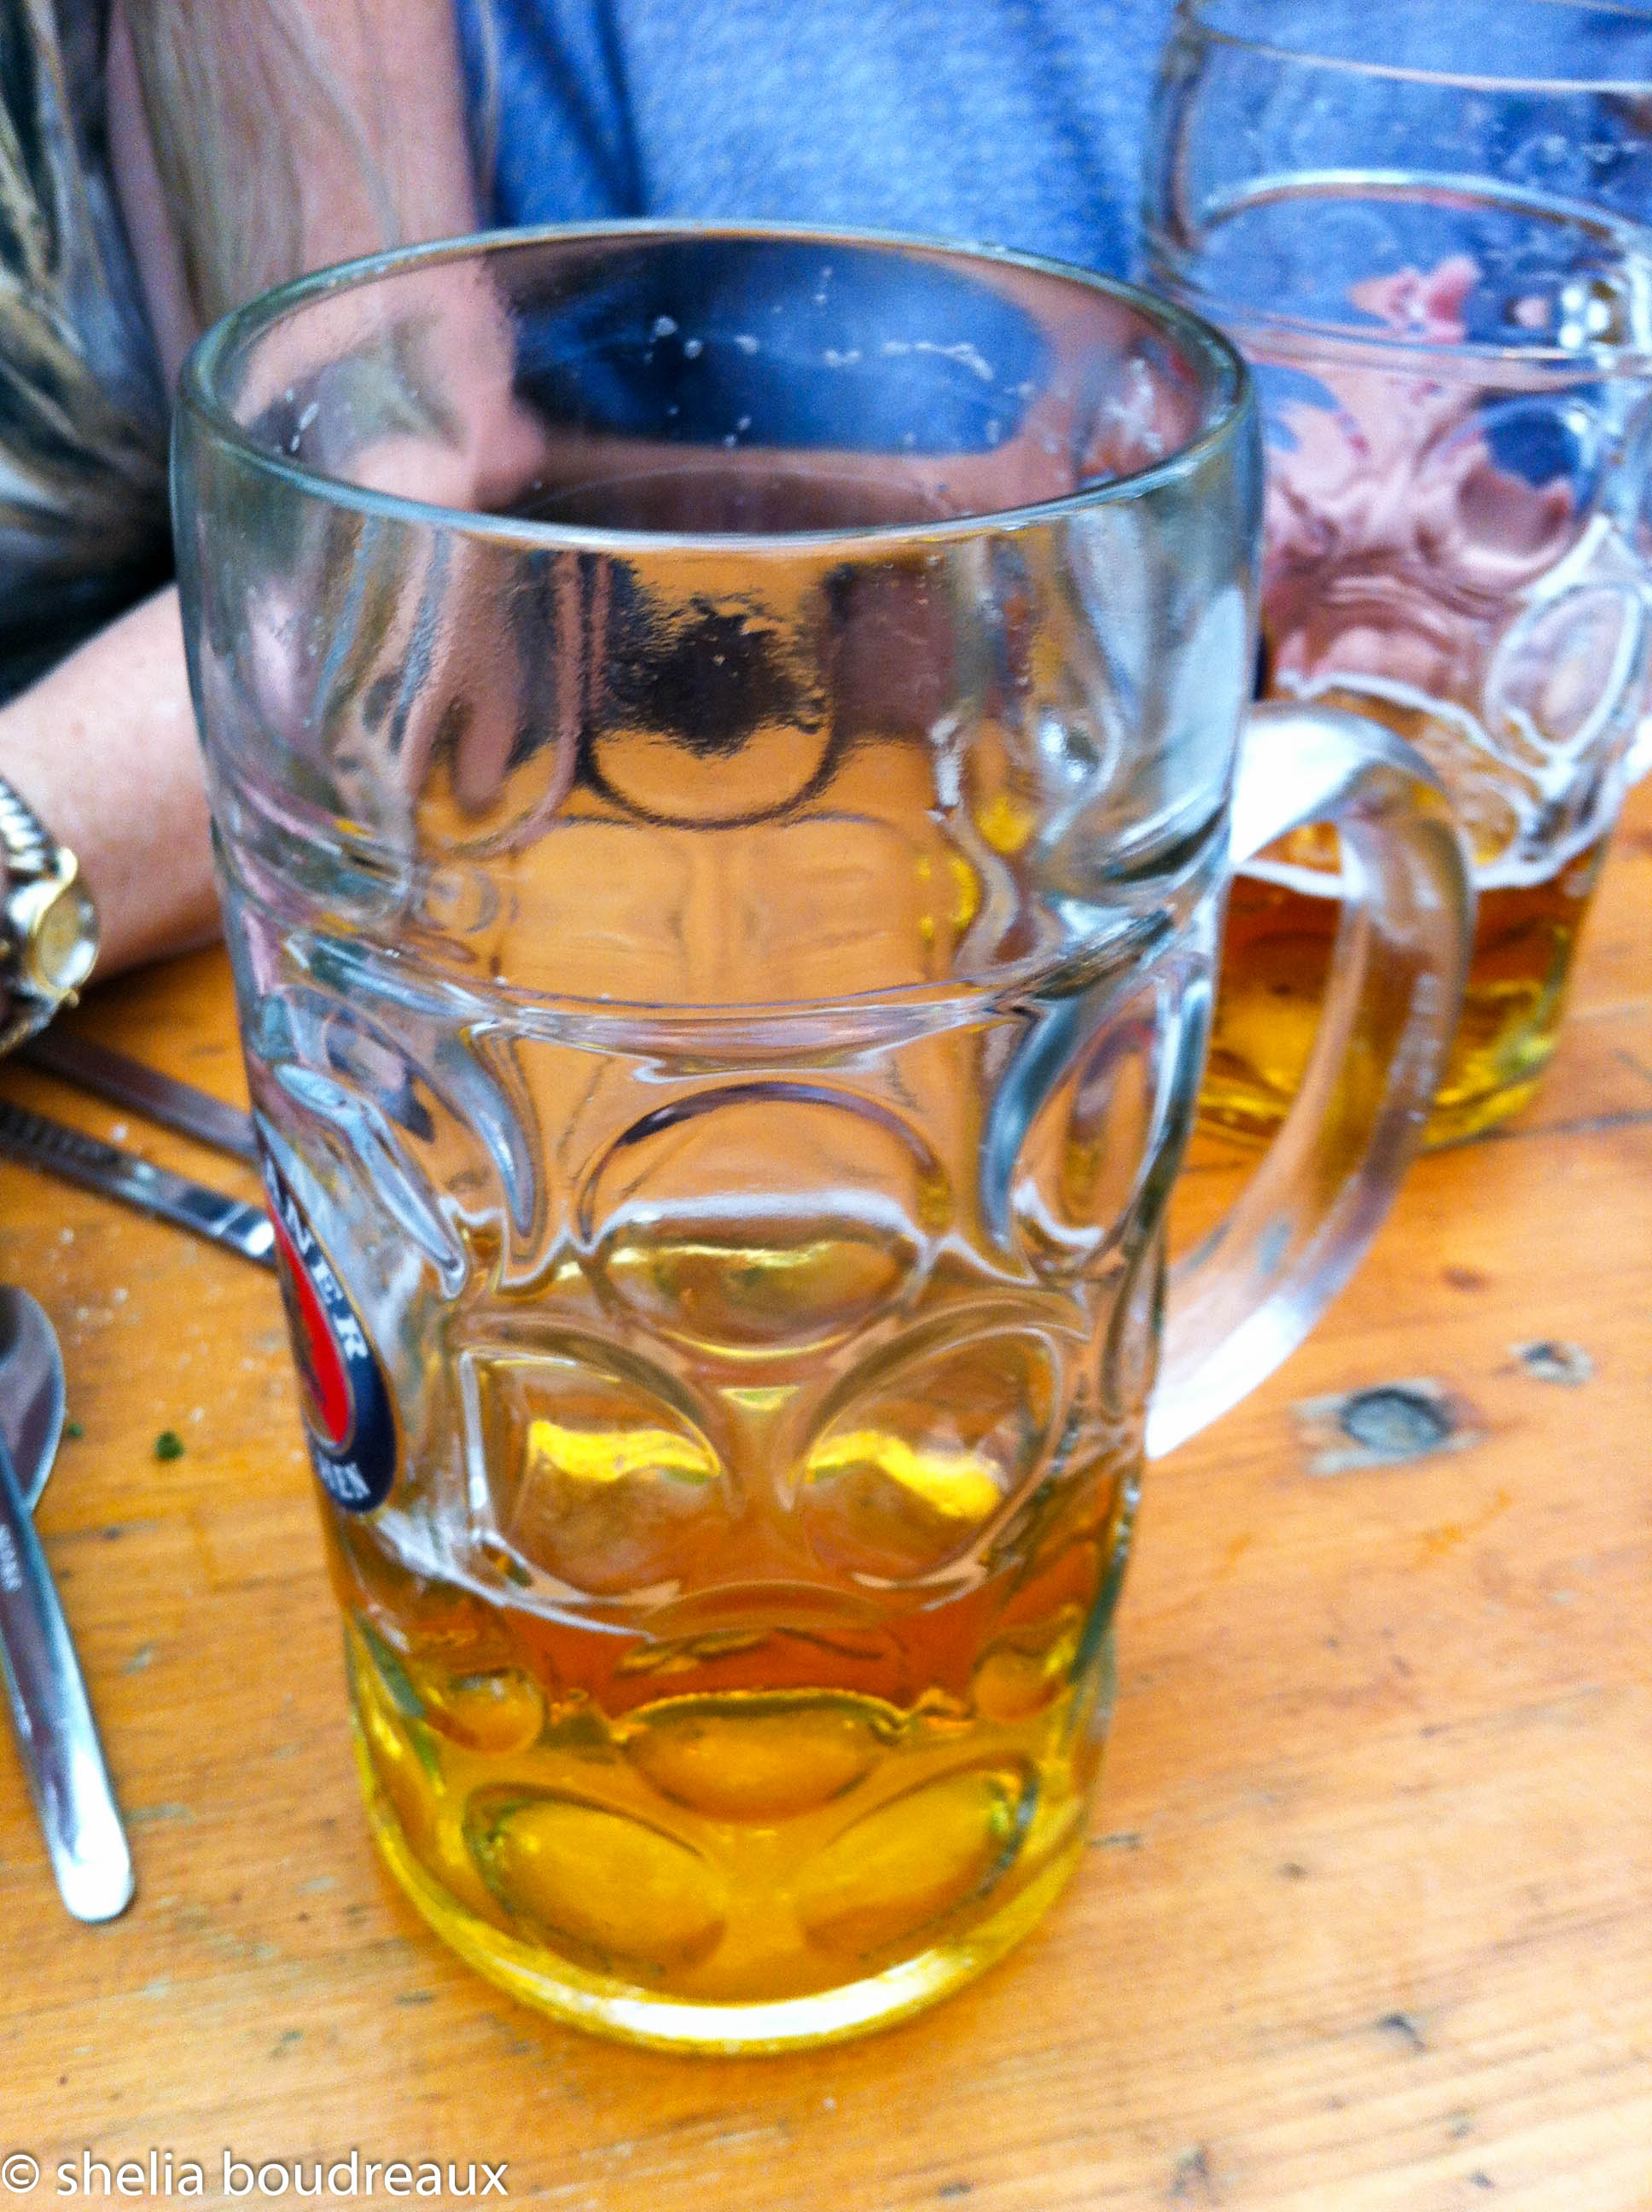 The beers are huge!